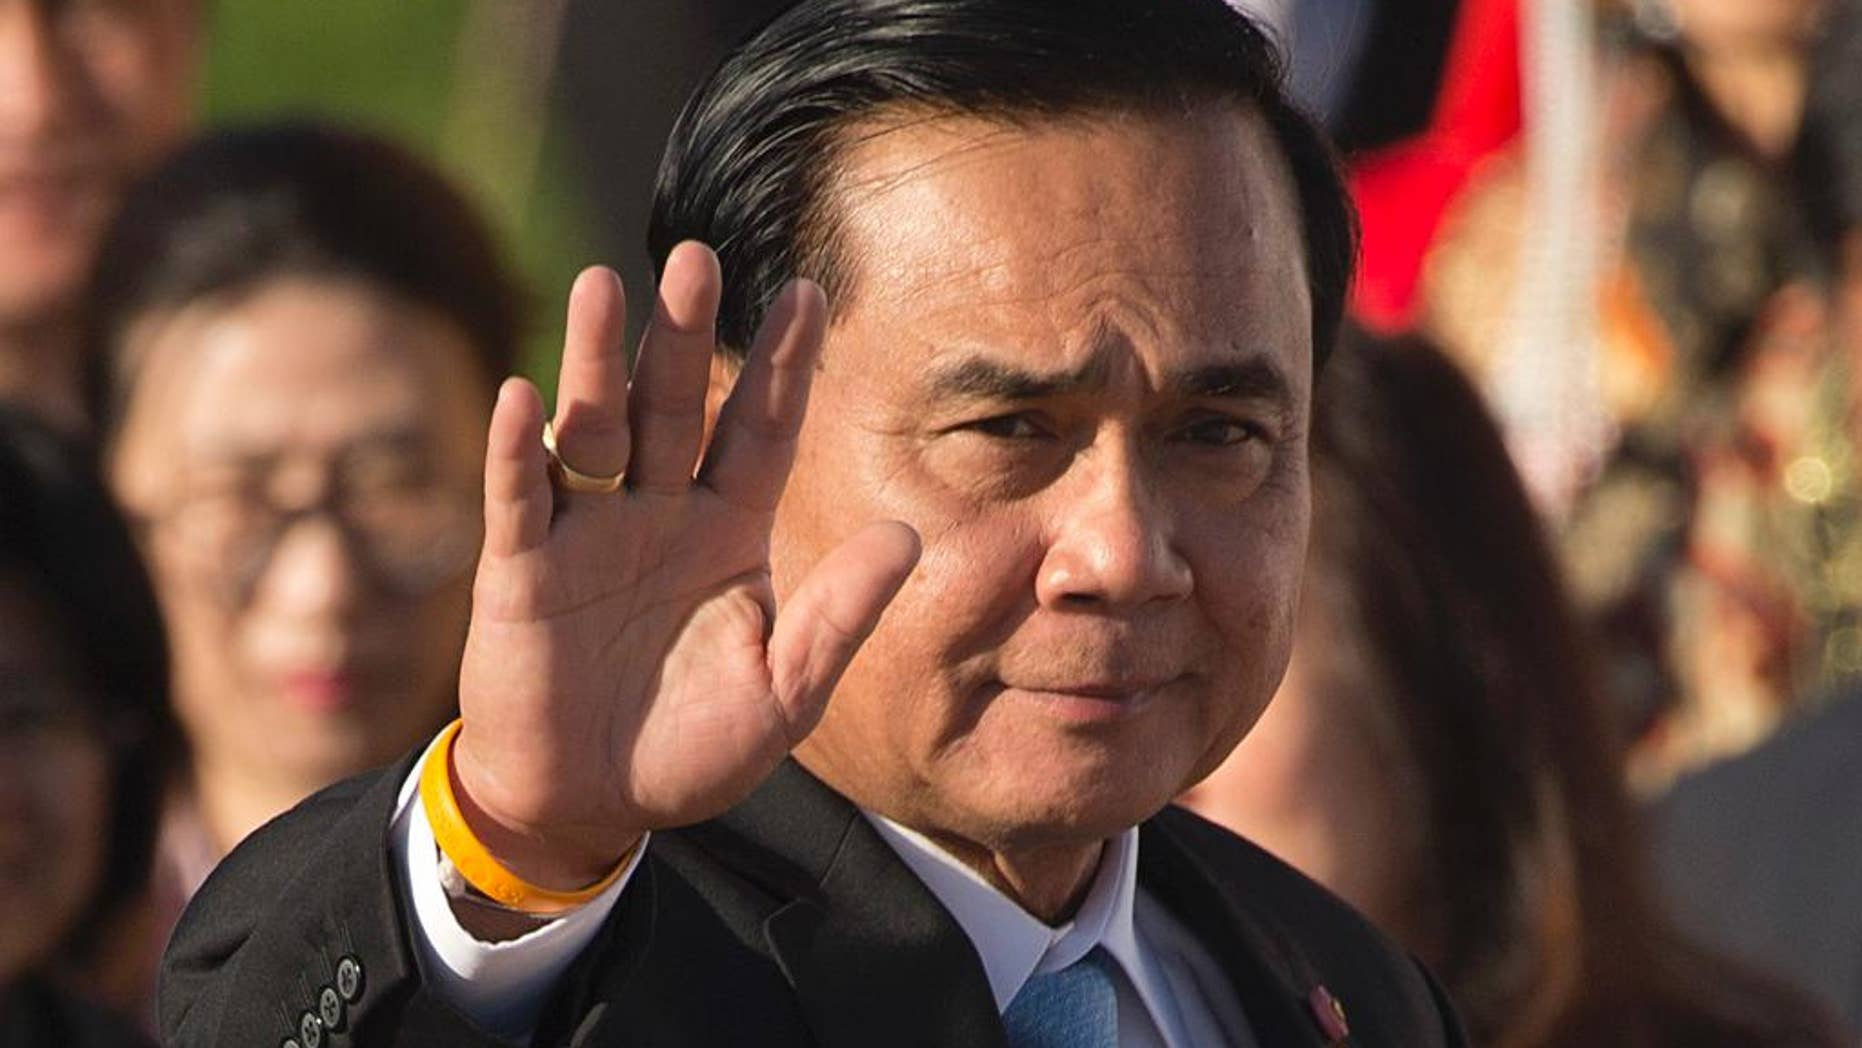 """FILE - In this Saturday, July 16, 2016, file photo, Thailand's Prime Minister Prayuth Chan-ocha waves as he arrives for a group photo of leaders at the 11th Asia-Europe Meeting (ASEM) in Ulaanbaatar, Mongolia. On Wednesday, Prime Minister Prayuth defended the military detention of """"so-called political prisoners,"""" saying they are given good housing and food, but that they sometimes complain about things like the quality of air conditioning. (AP Photo/Mark Schiefelbein, File)"""